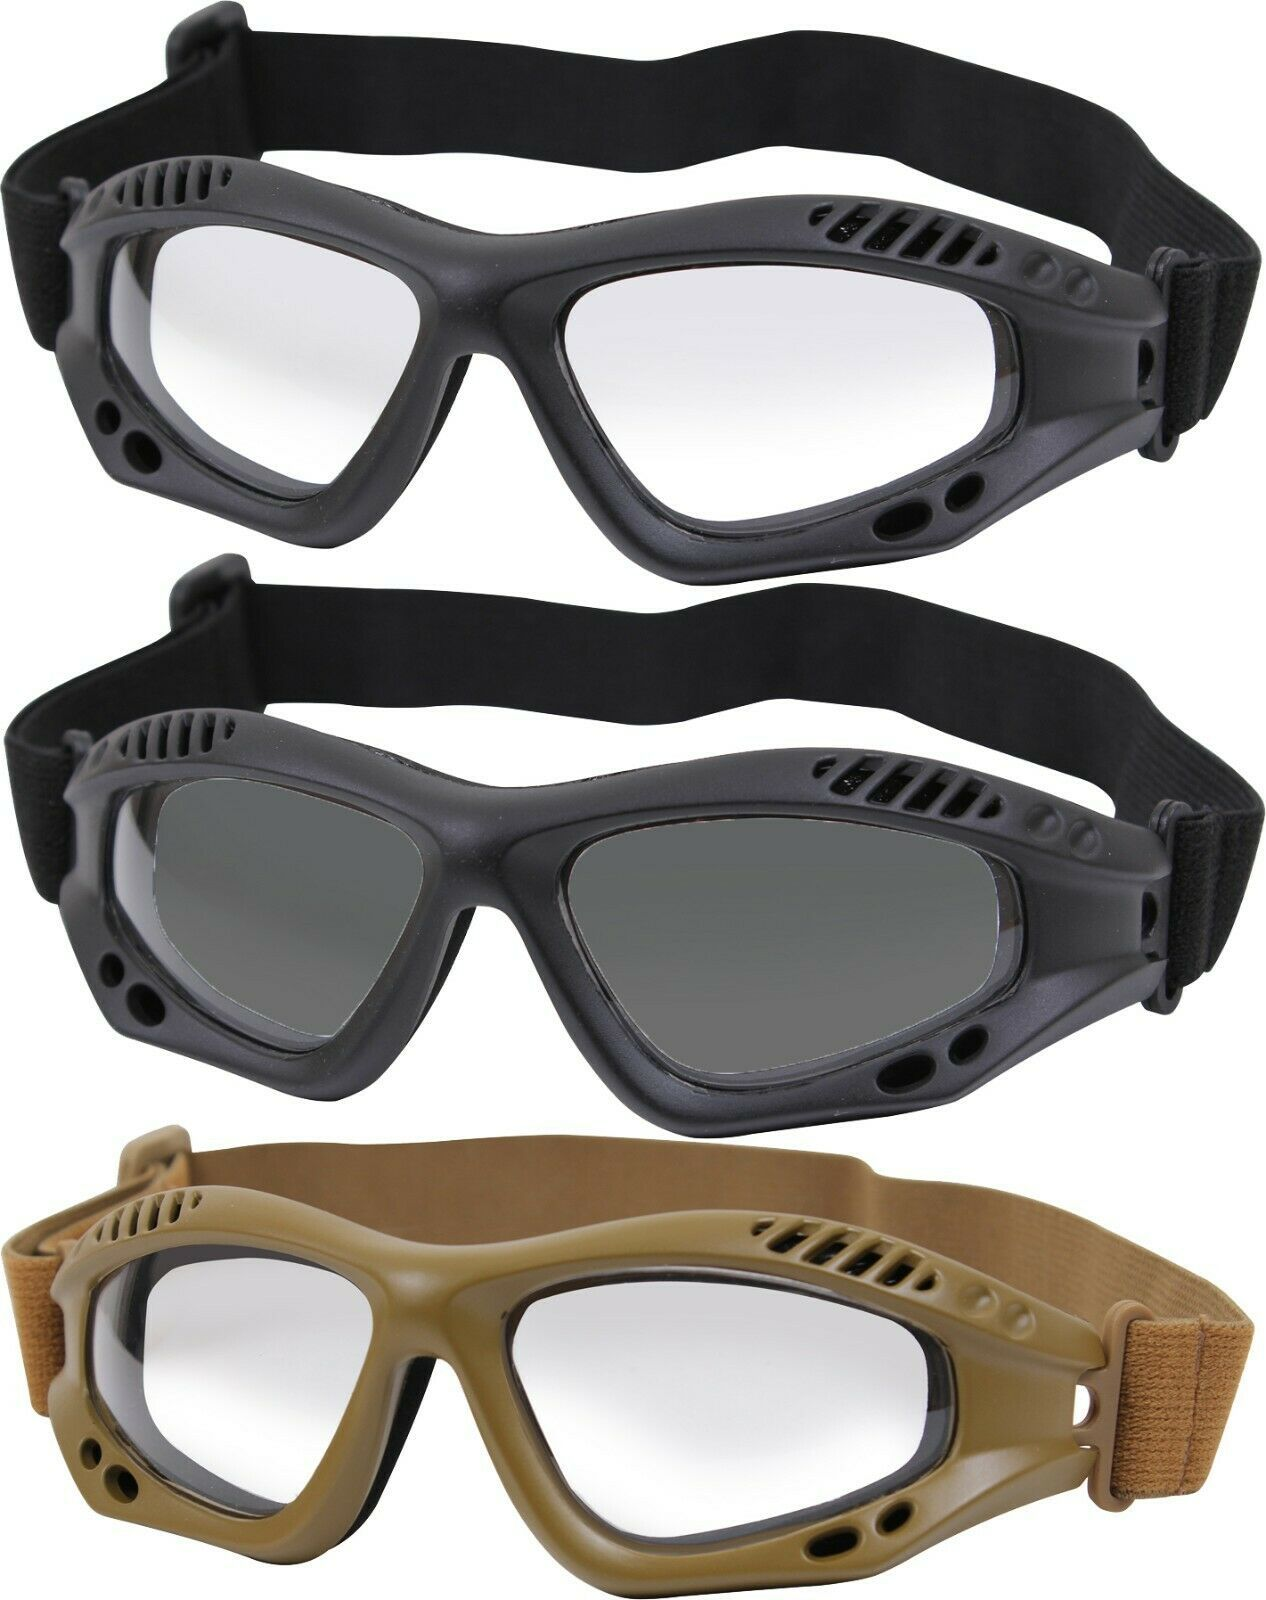 Primary image for Ventec Anti-Fog Tactical Goggles ANSI-Z87-1 RATED UV 400 Shatterproof Lenses